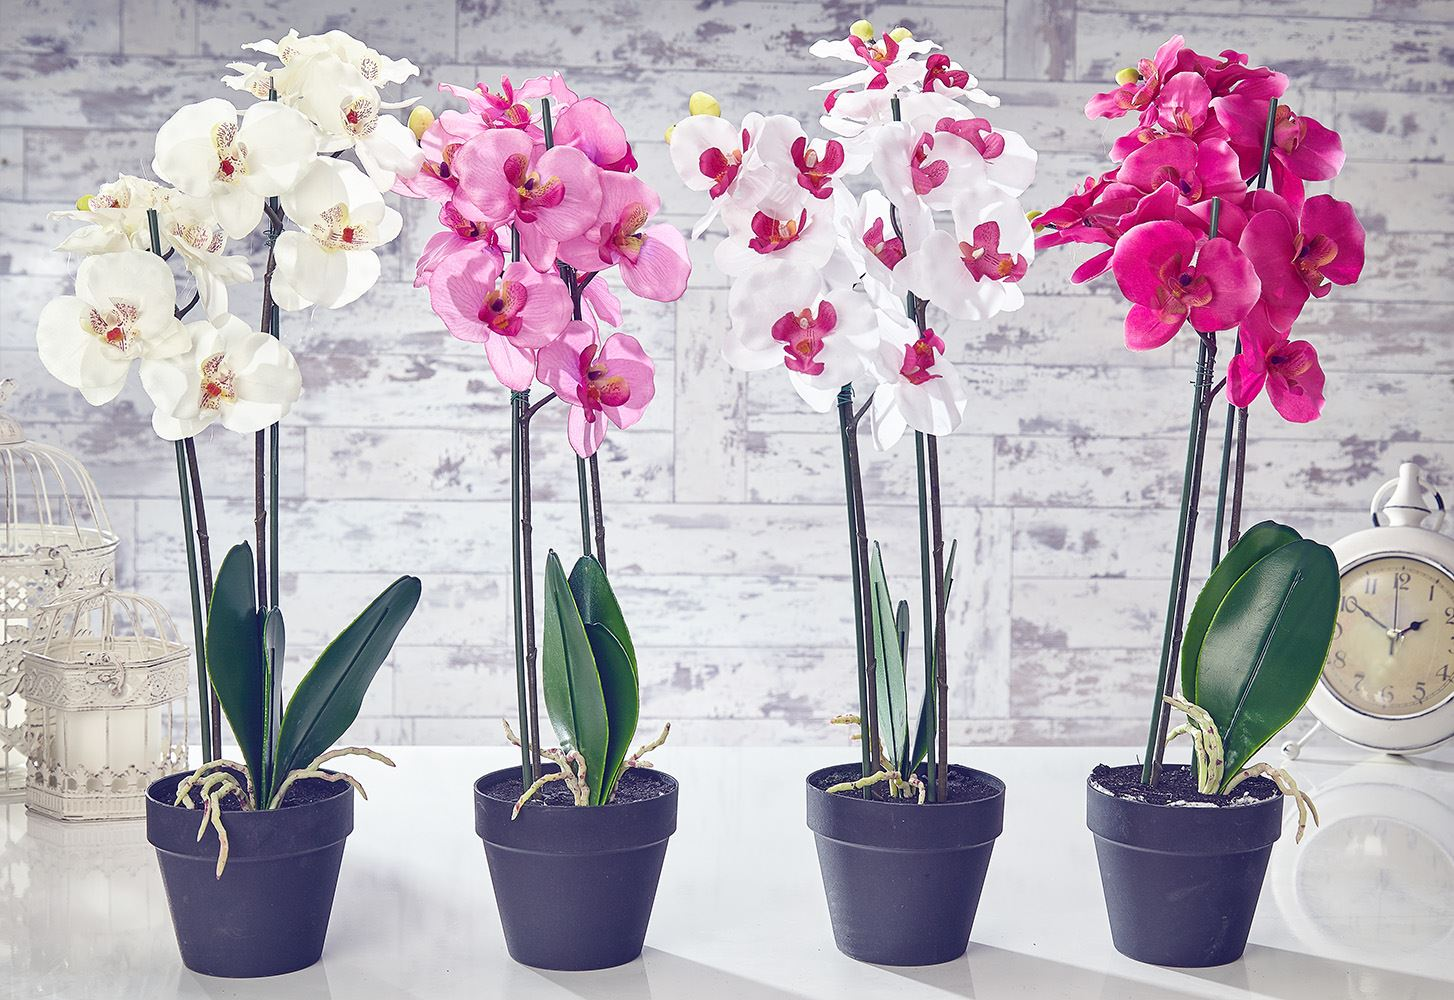 Artificial orchid flowers plants in pot home decor garden for Plant decorations home